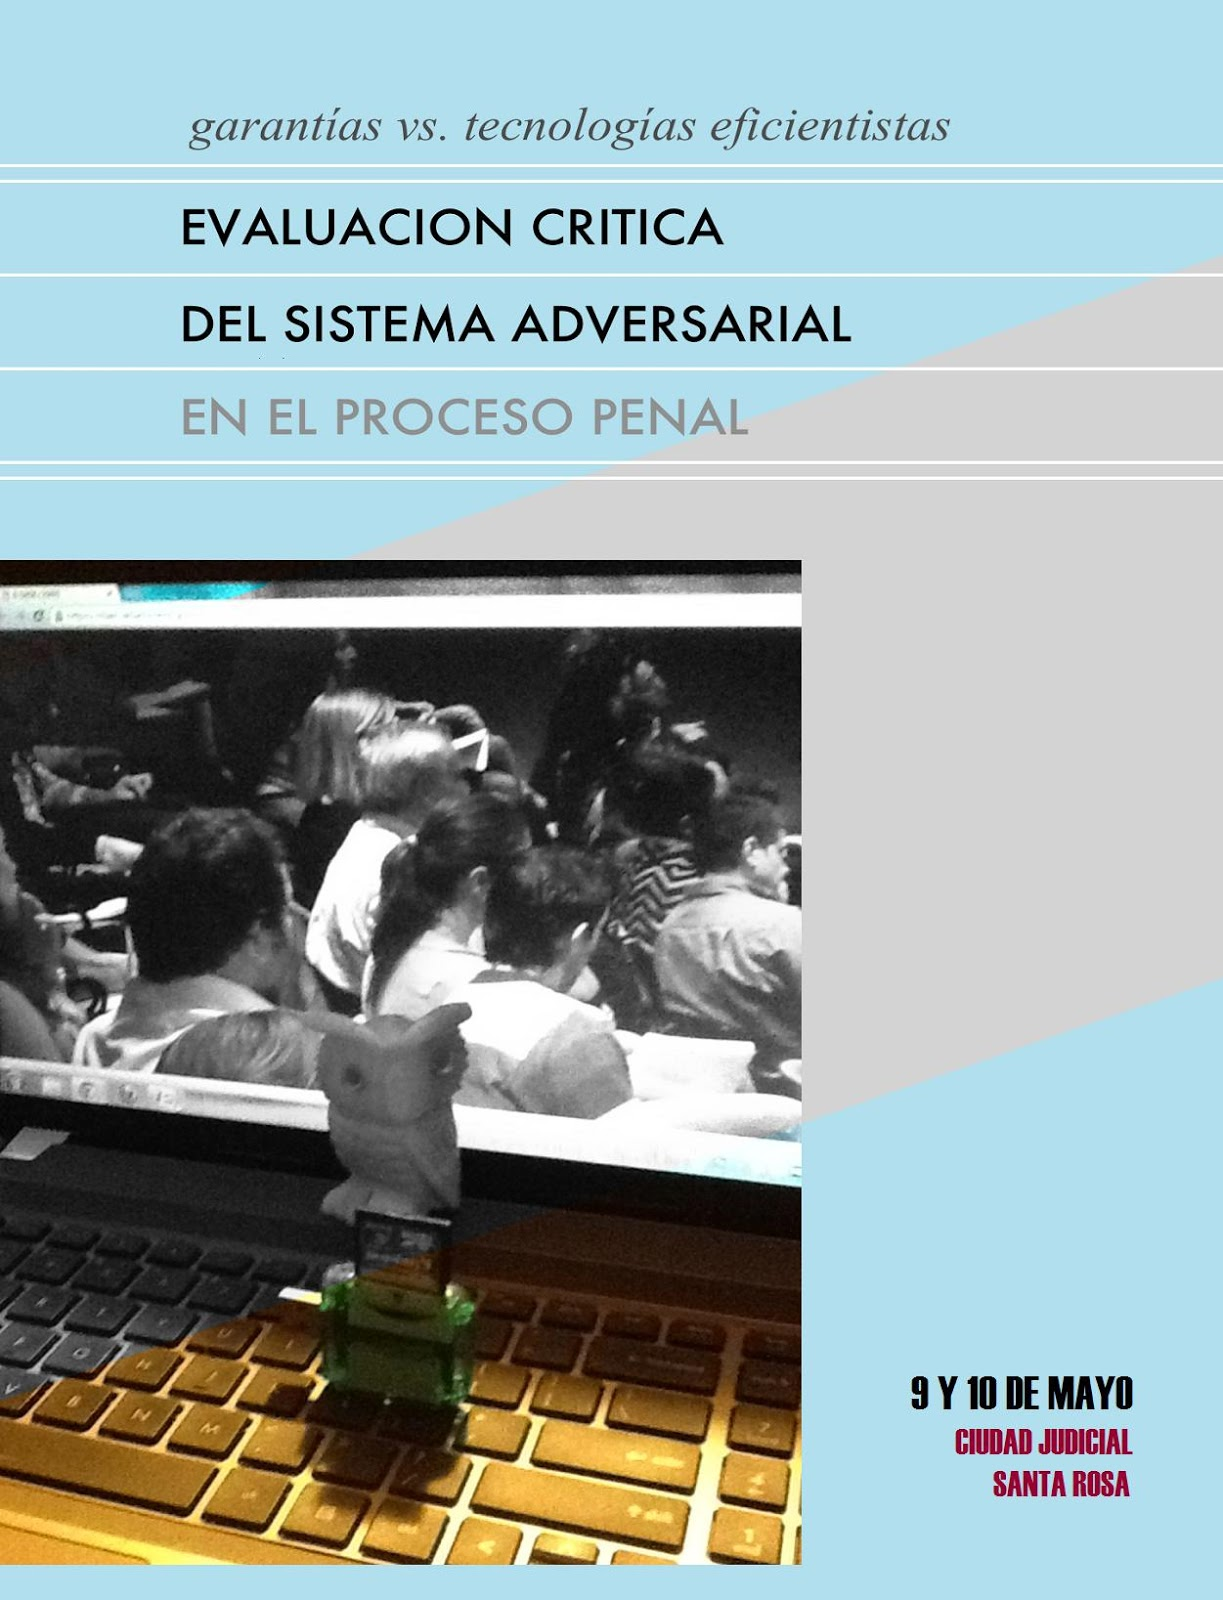 Jornadas de Evaluacin Crtica del Sistema Adversarial